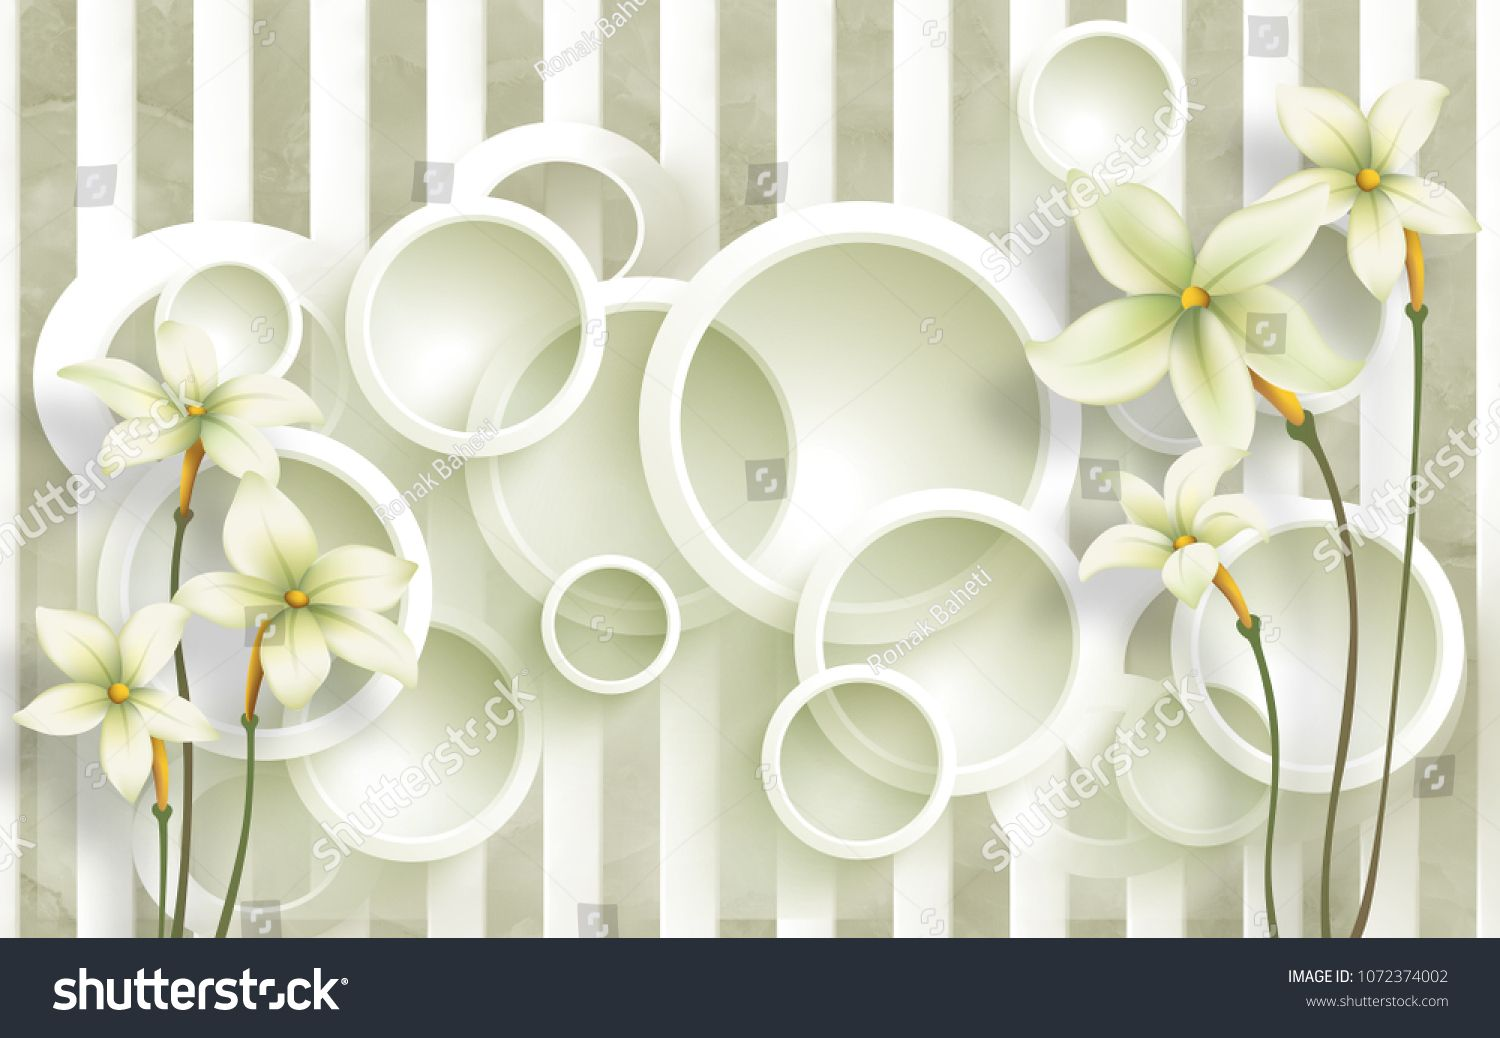 3d Circle Background With Flowers Background Wallpaper Flower Background Wallpaper Flower Backgrounds Stock Illustration